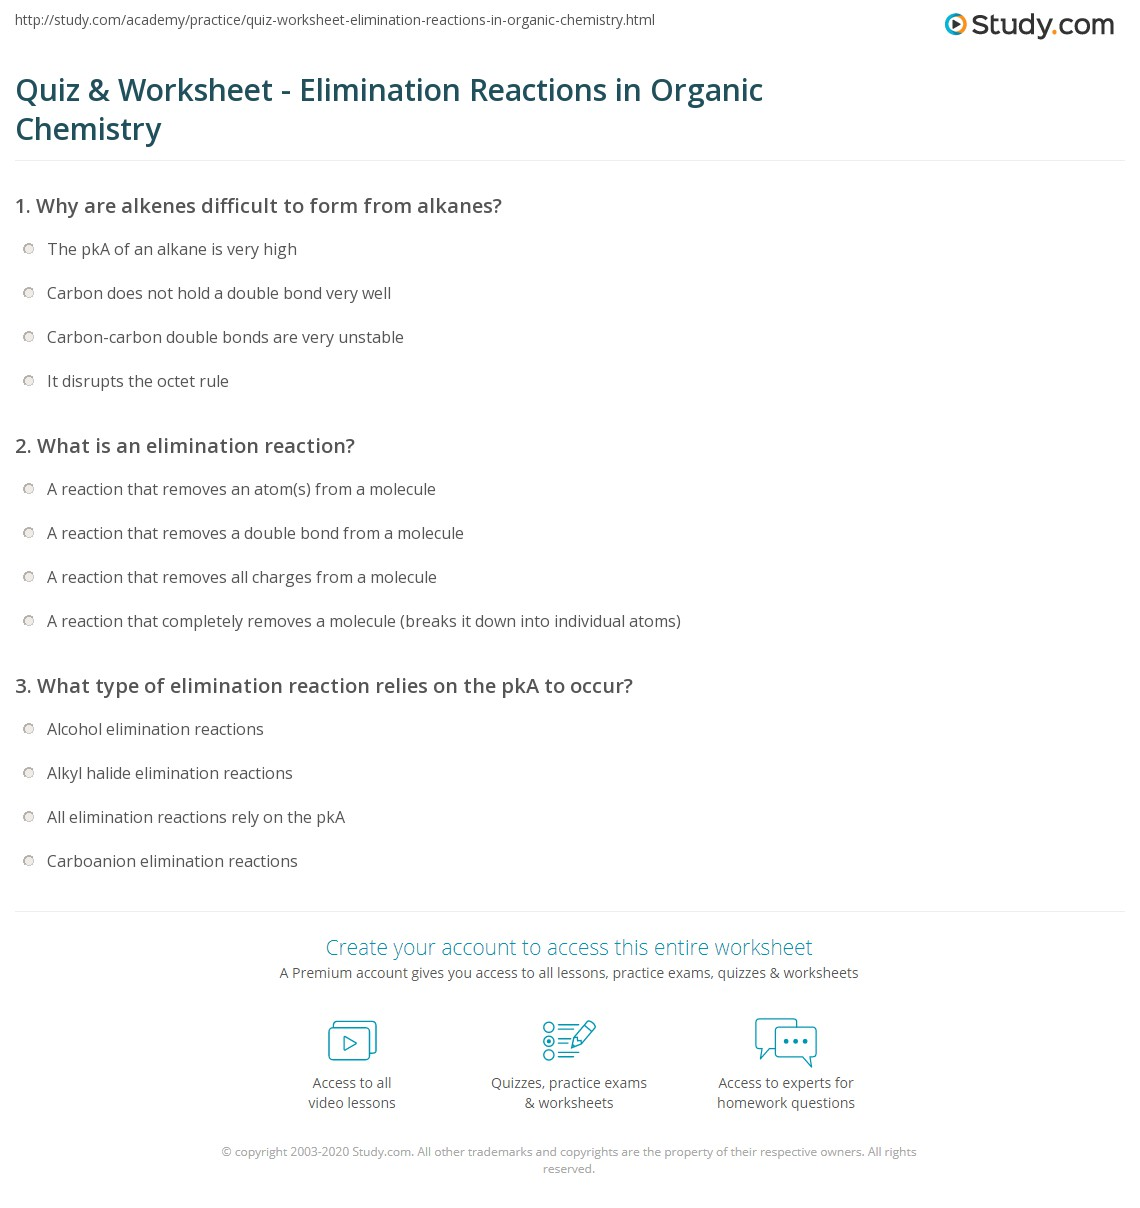 Print Elimination Reactions In Organic Chemistry Worksheet